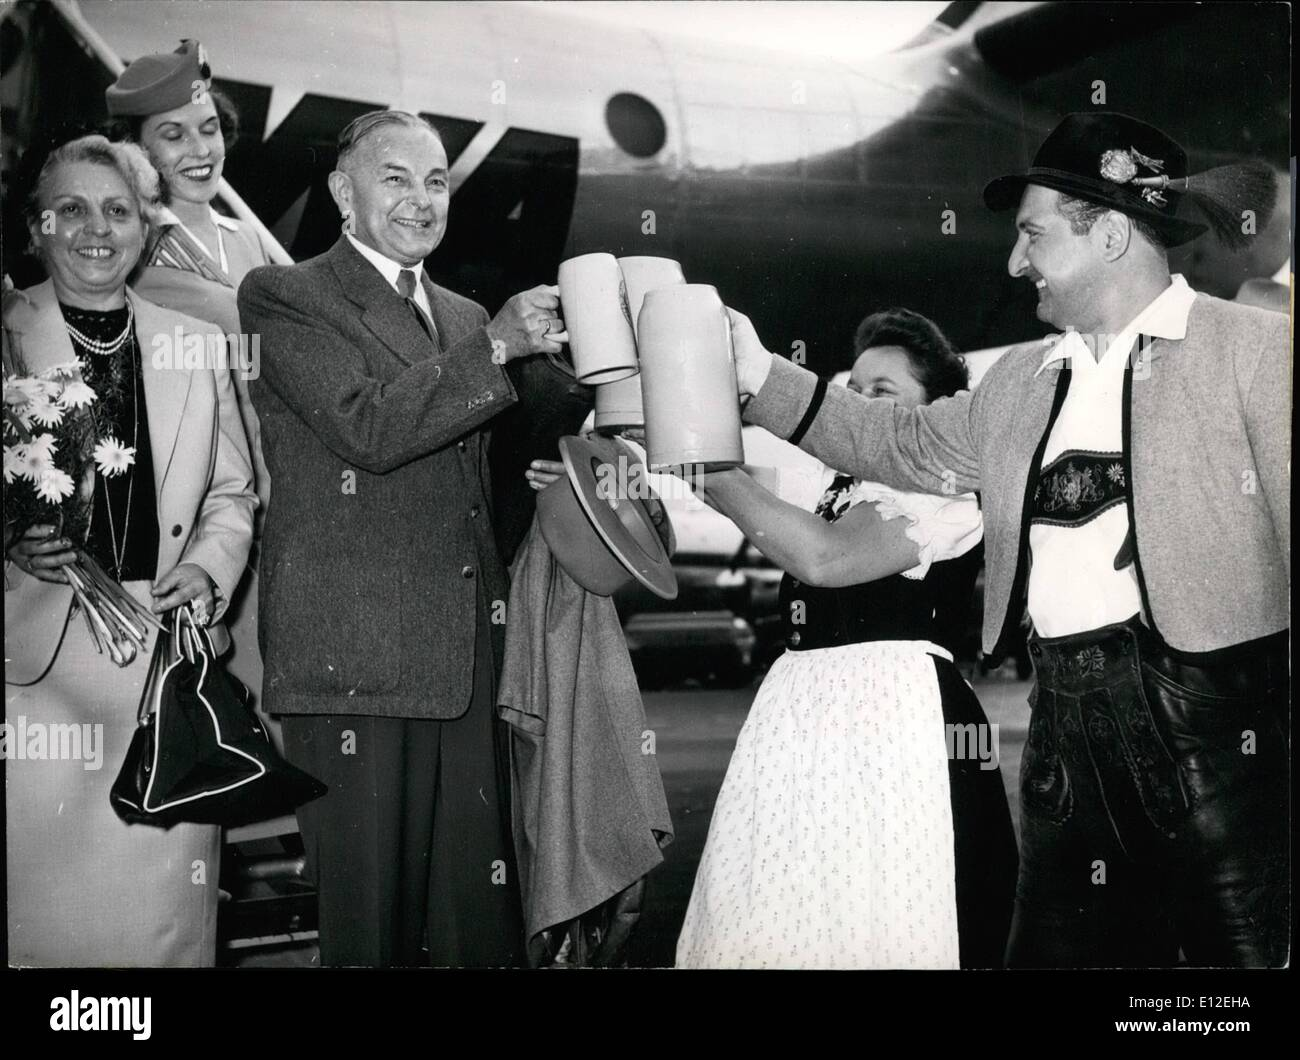 Dec. 16, 2011 - Bavarian Prime Minister Dr. Ehard departs for America. On Frankfurt's Rhine Main Air Base, the Bavarian Prime Minister Dr. Ehard bid goodbye to his friends, prior to his flight to the US. Picture shows the Bavarian Prime Minister and Mrs. Ehard (left) Keystone Munich 16 June 1953 - Stock Image